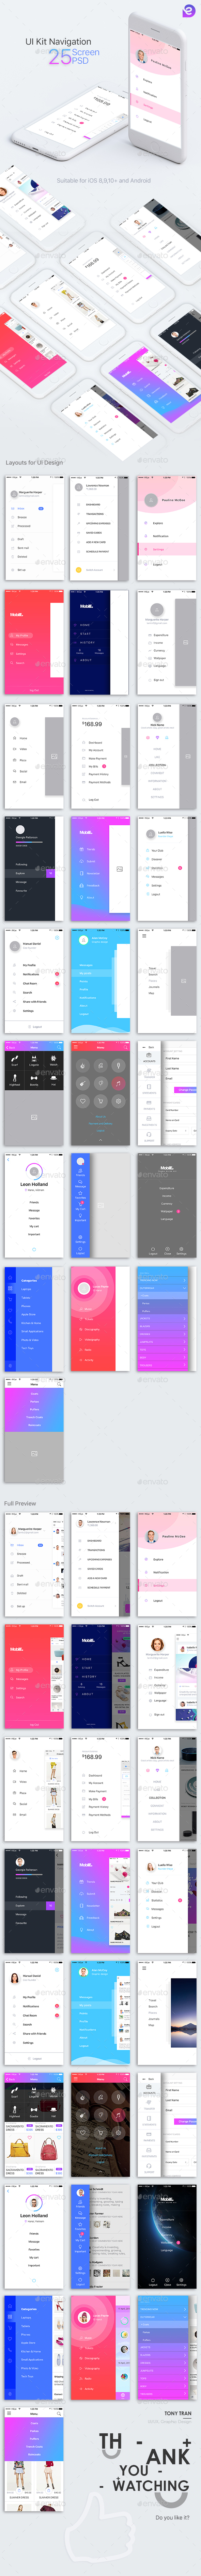 Blocky UI Kit